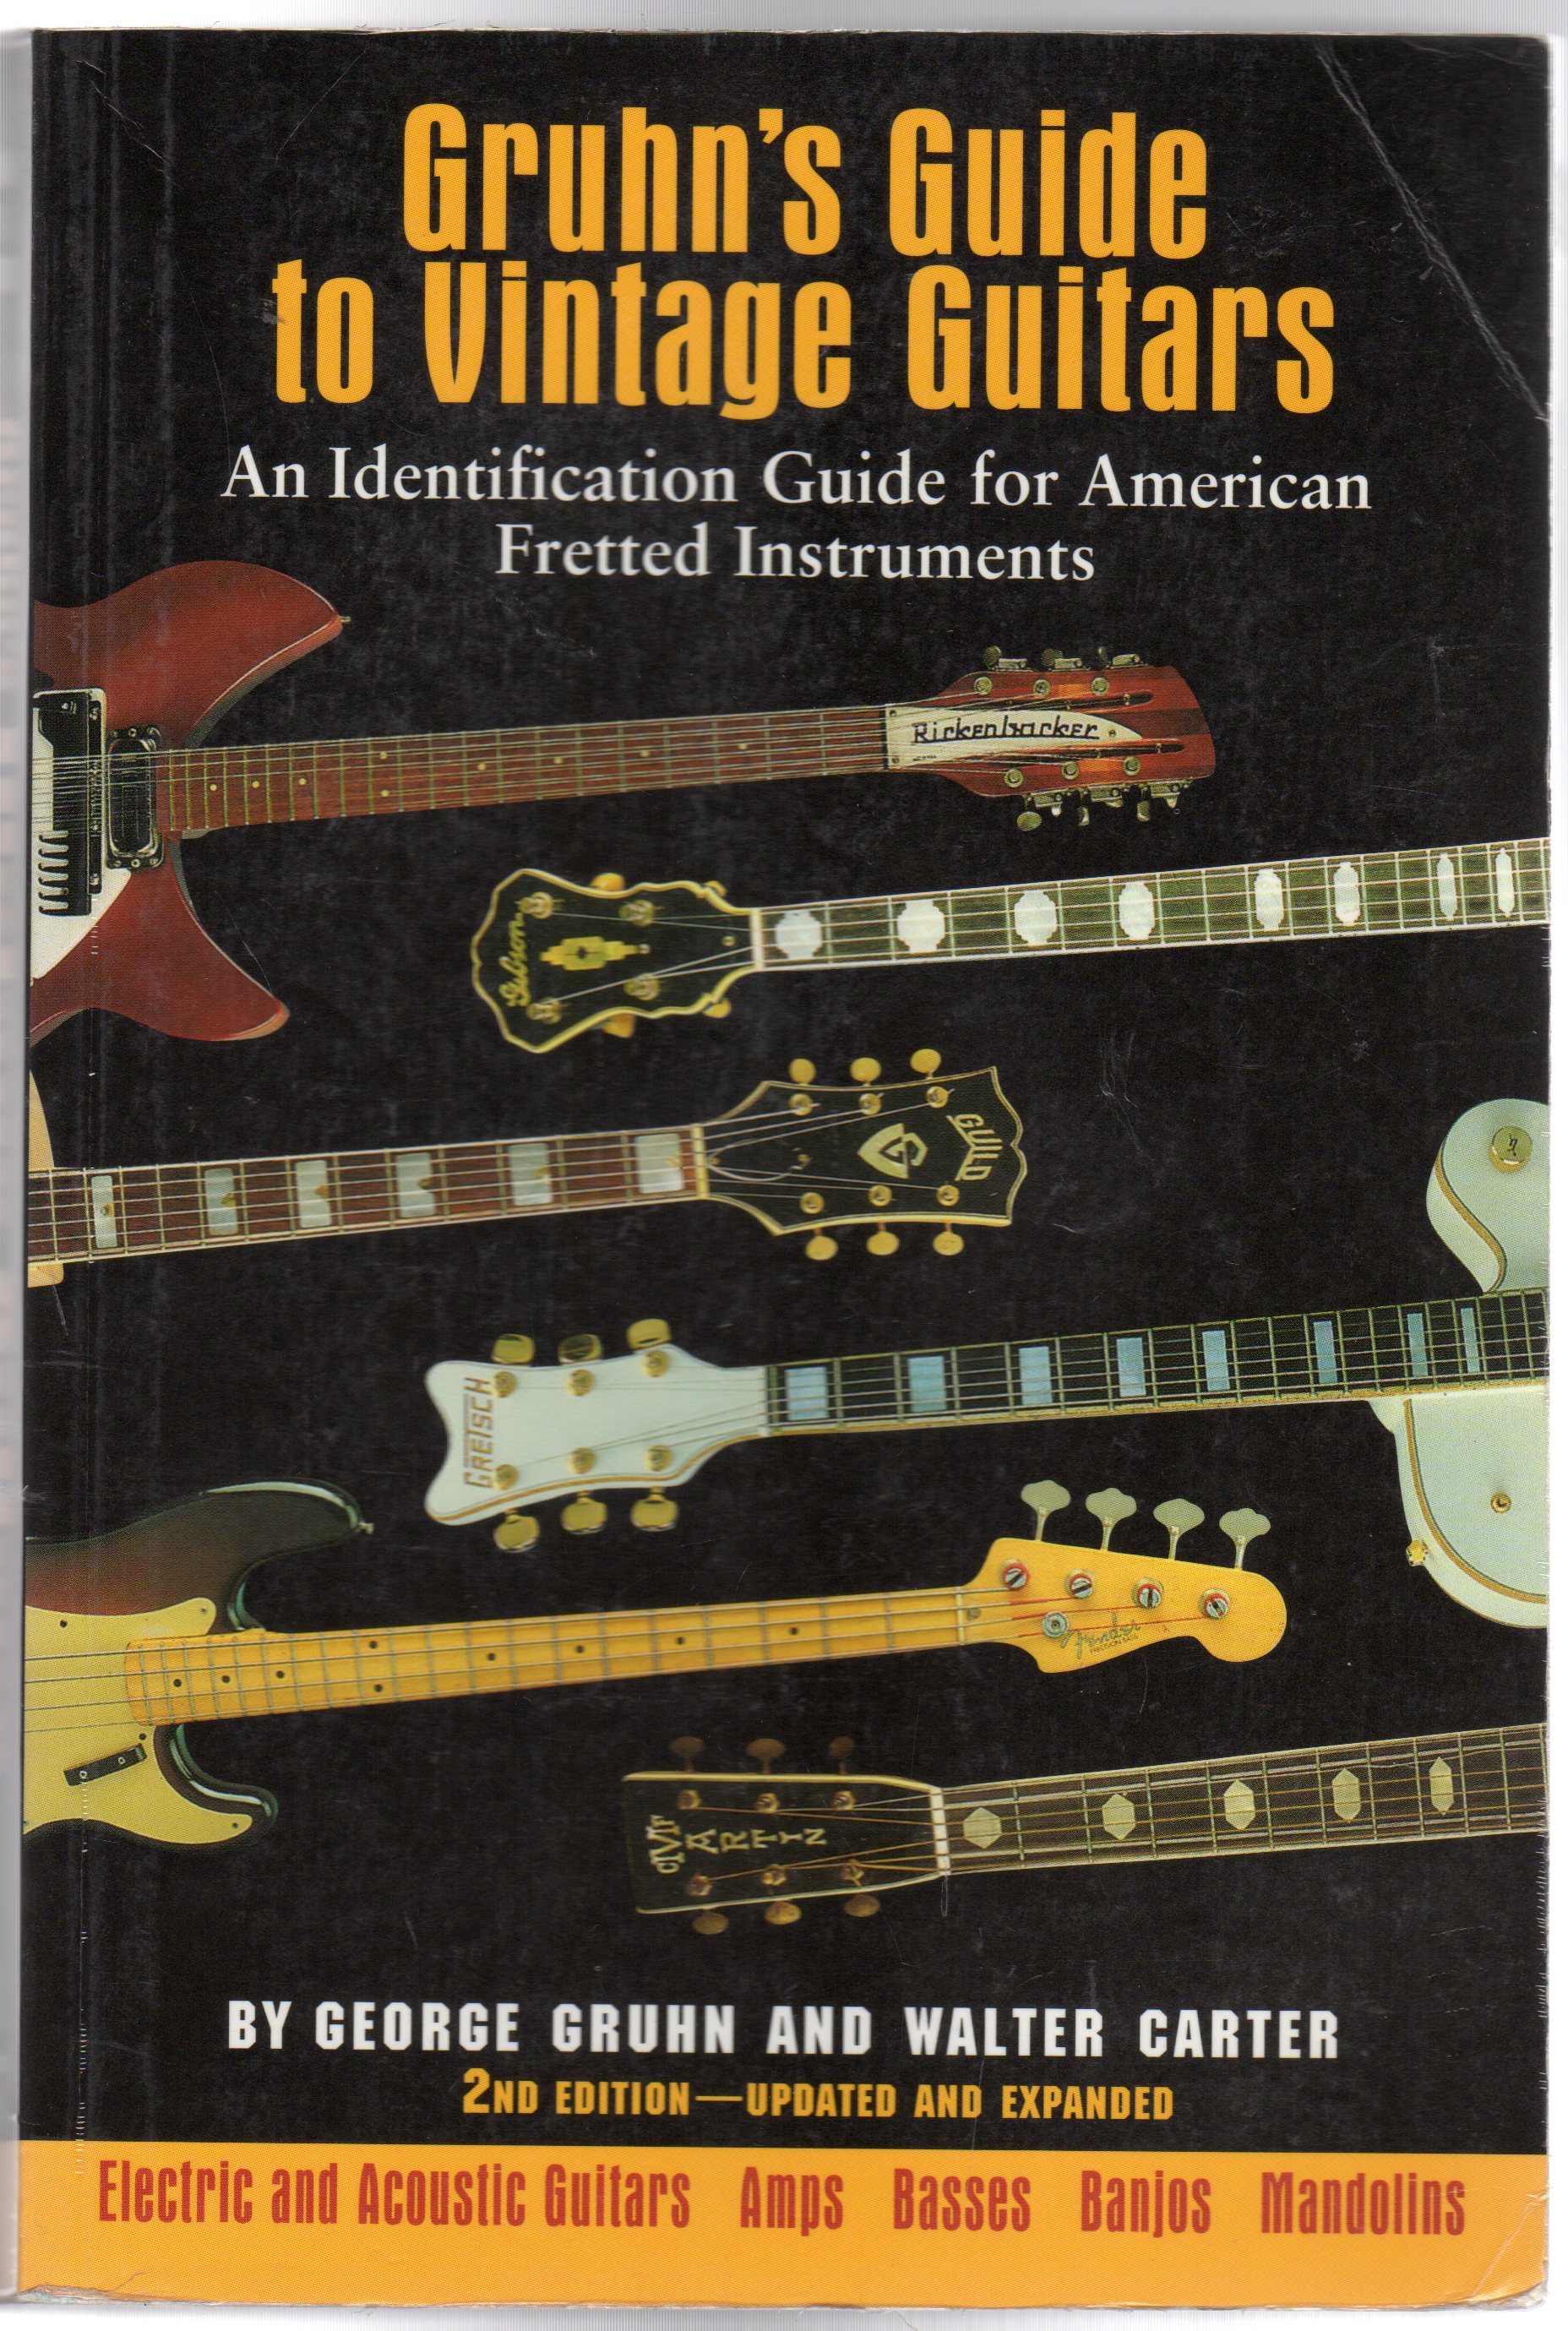 Image for Gruhn's Guide to Vintage Guitars : An Identification Guide for American Fretted Instruments